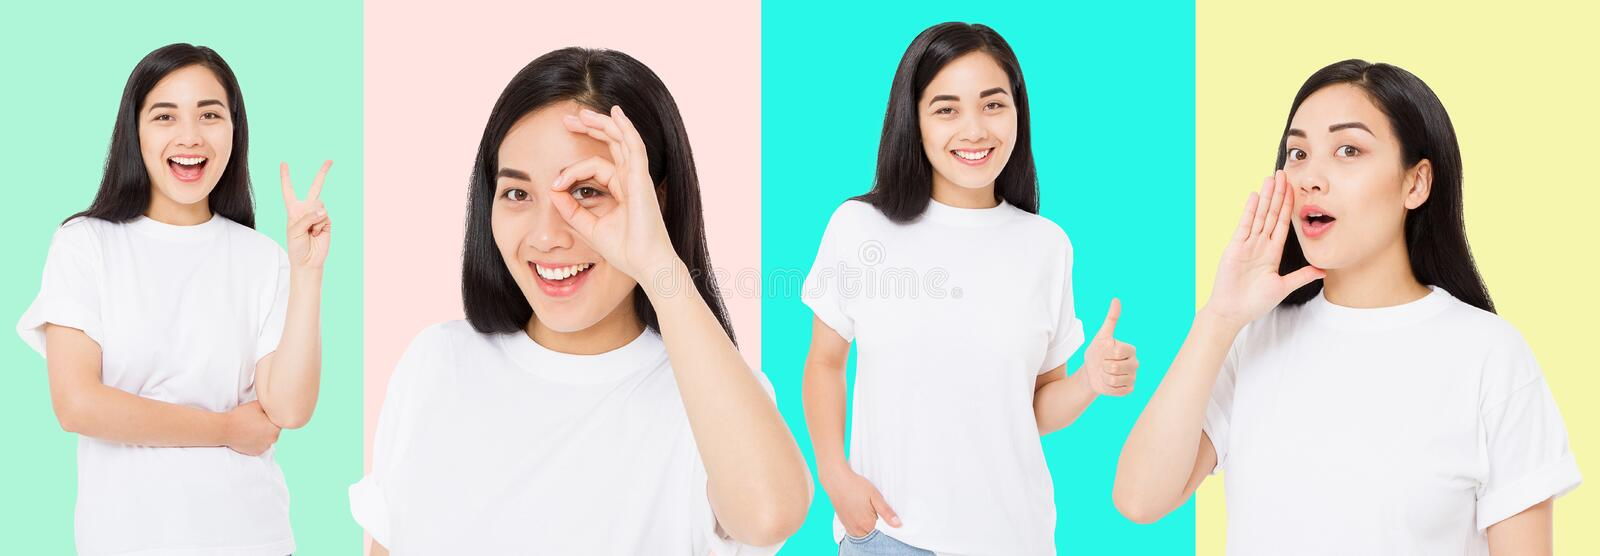 Collage of surprised shocked excited asian woman face isolated on colorful background. Young asian girl in summer t shirt. Copy royalty free stock photography